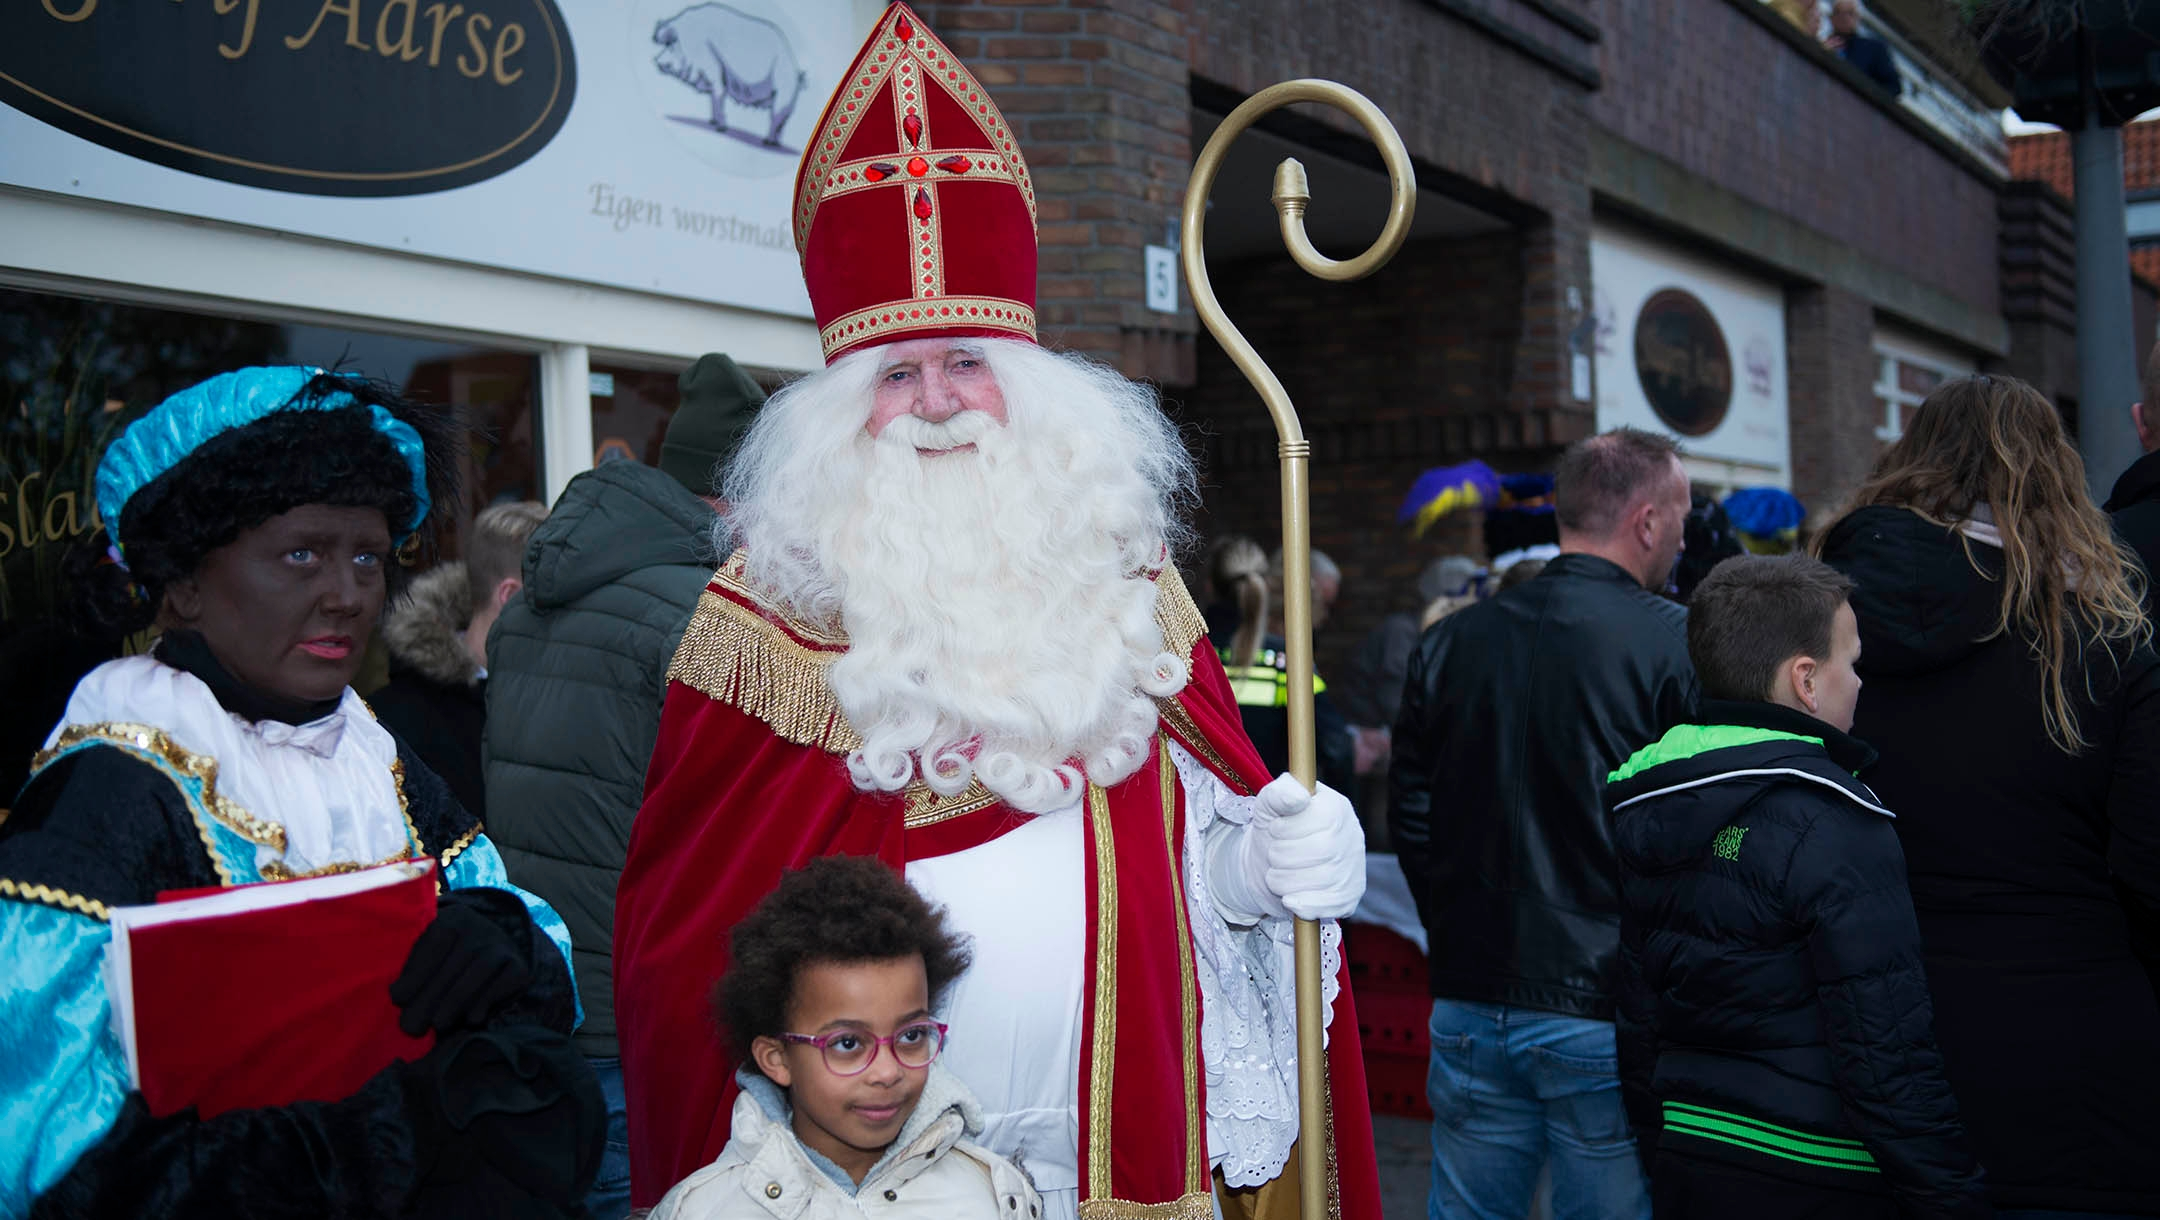 A man dressed like Sinterklaas and a woman portraying Black Pete entertaining children under police protection in northern Amsterdam, the Netherlands on Nov. 16, 2019. (Cnaan Liphshiz)